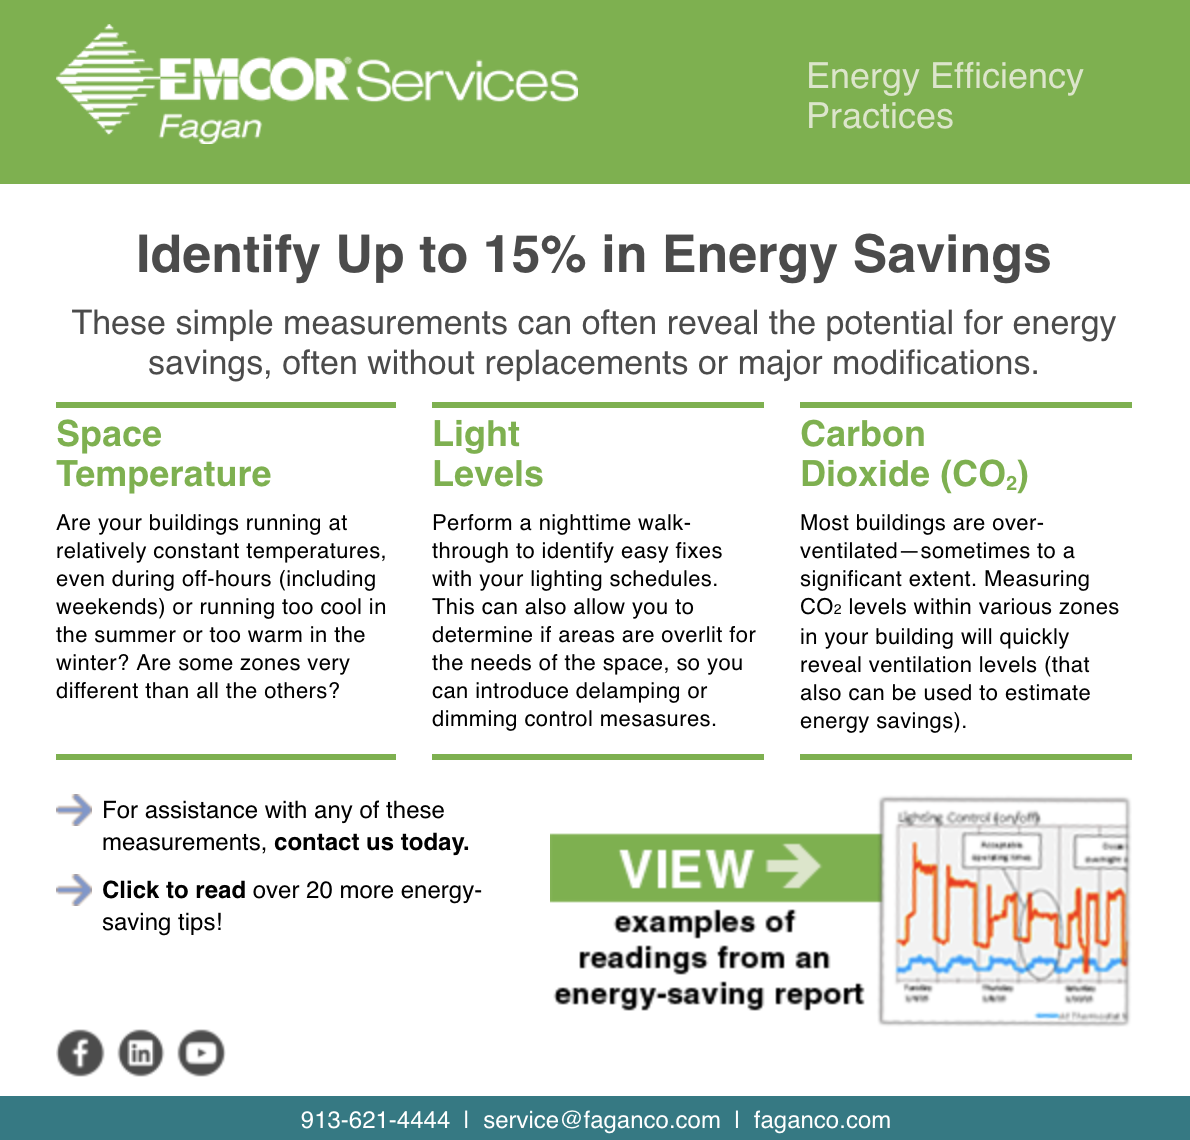 Identify up to 15% in Energy Savings.